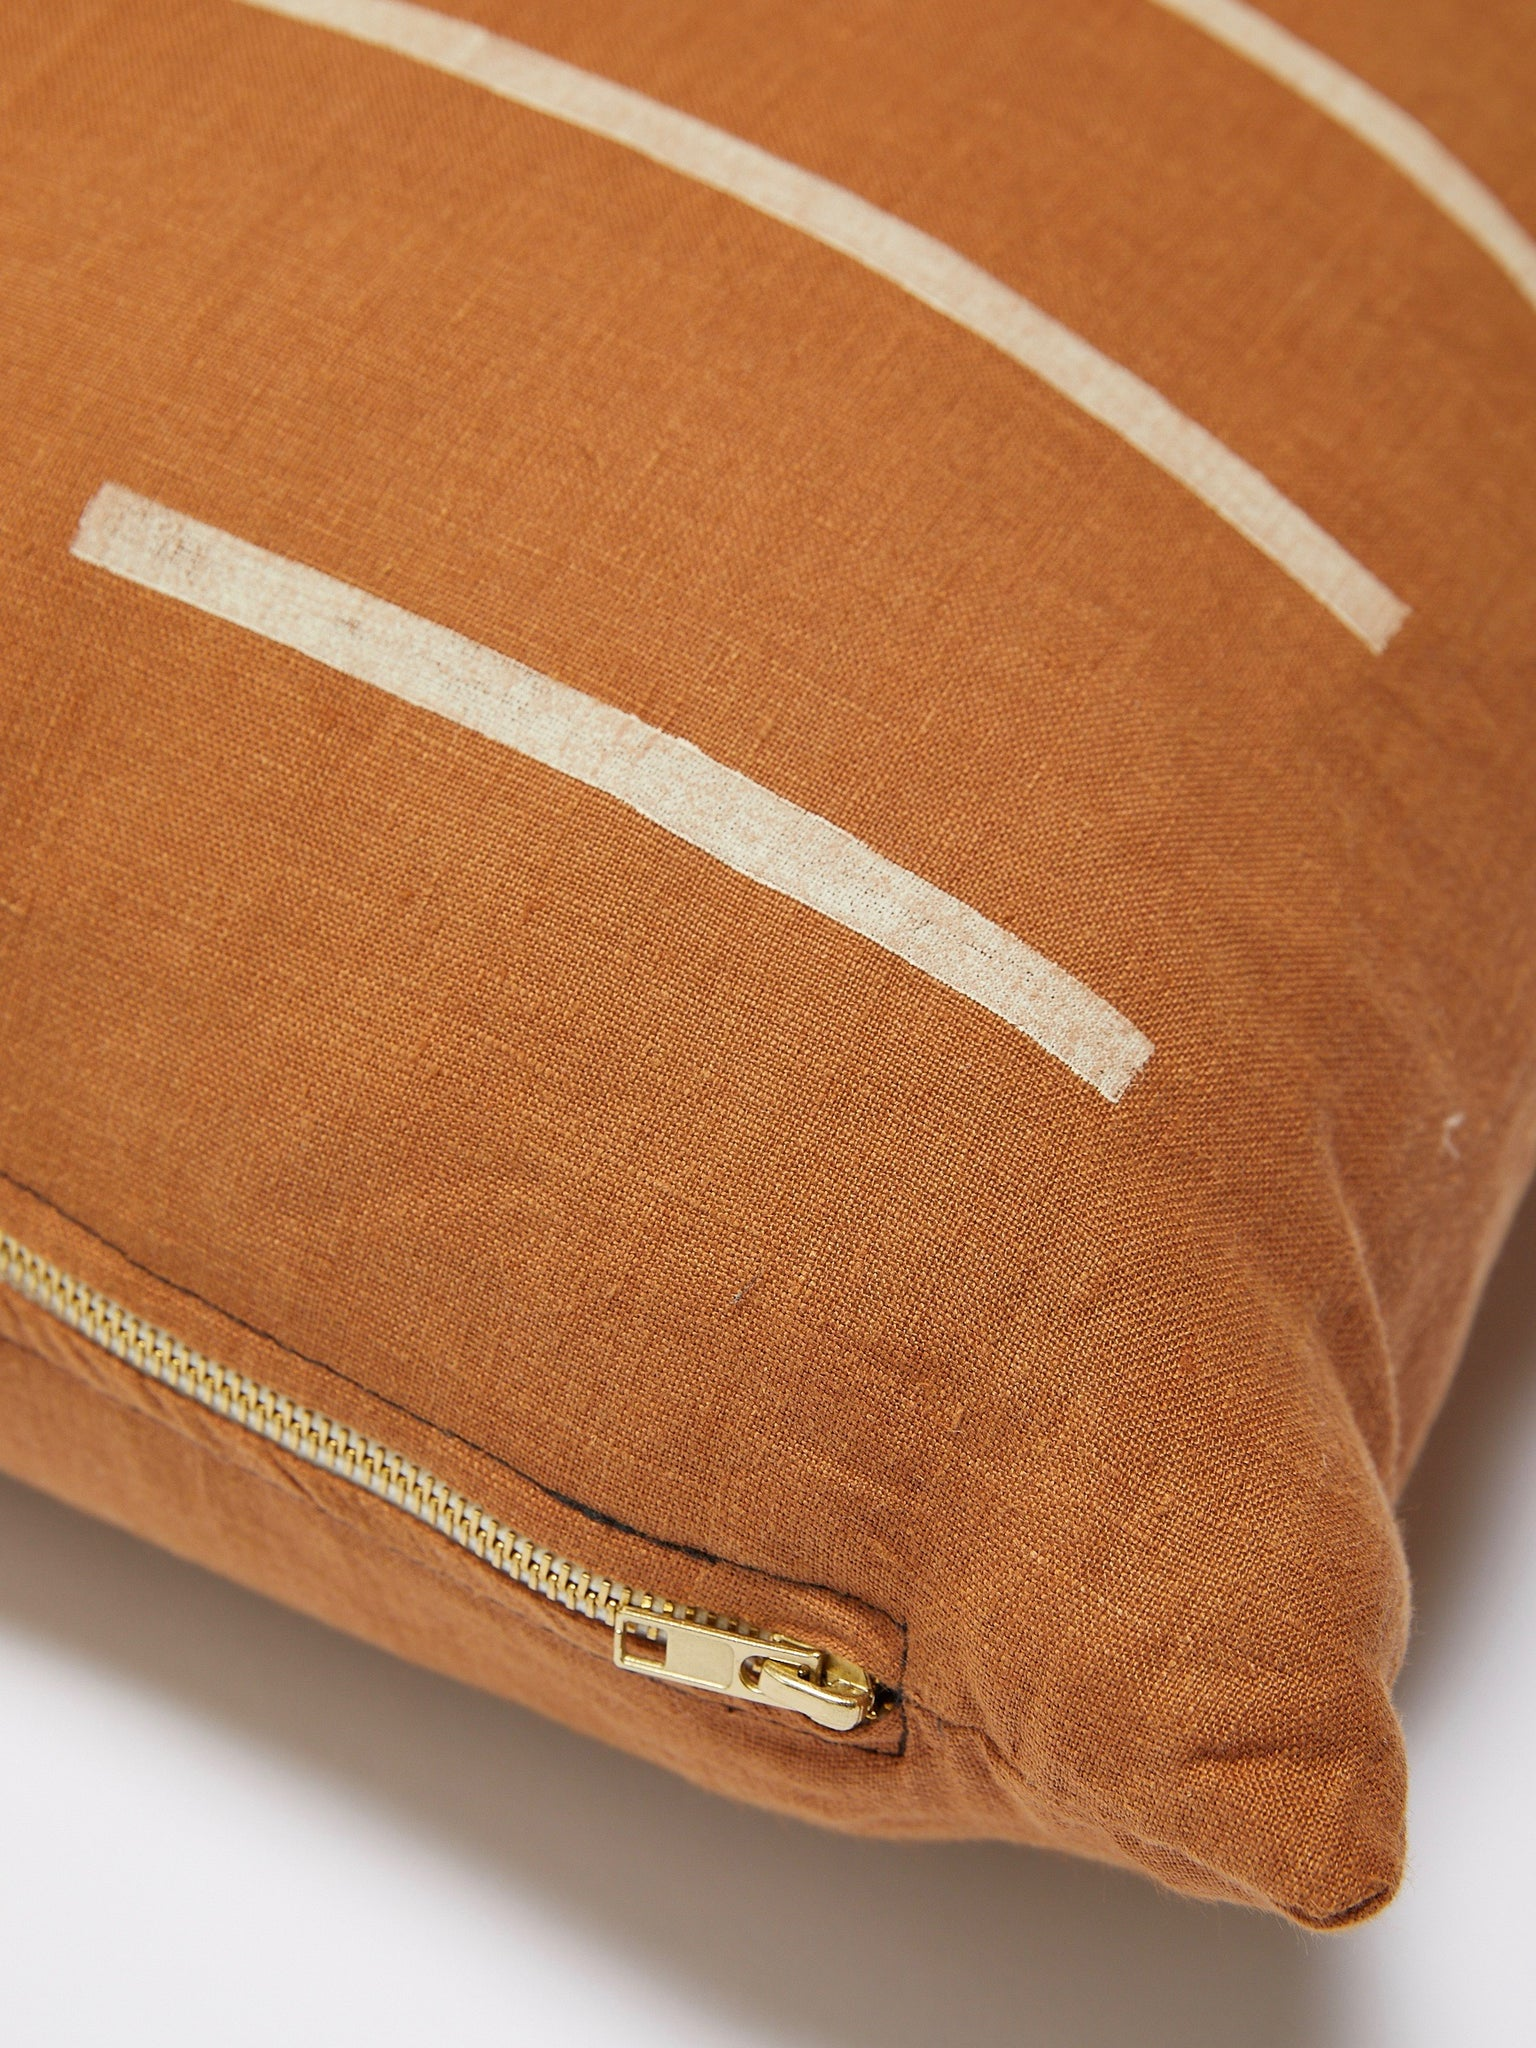 K'UN RUST PILLOW